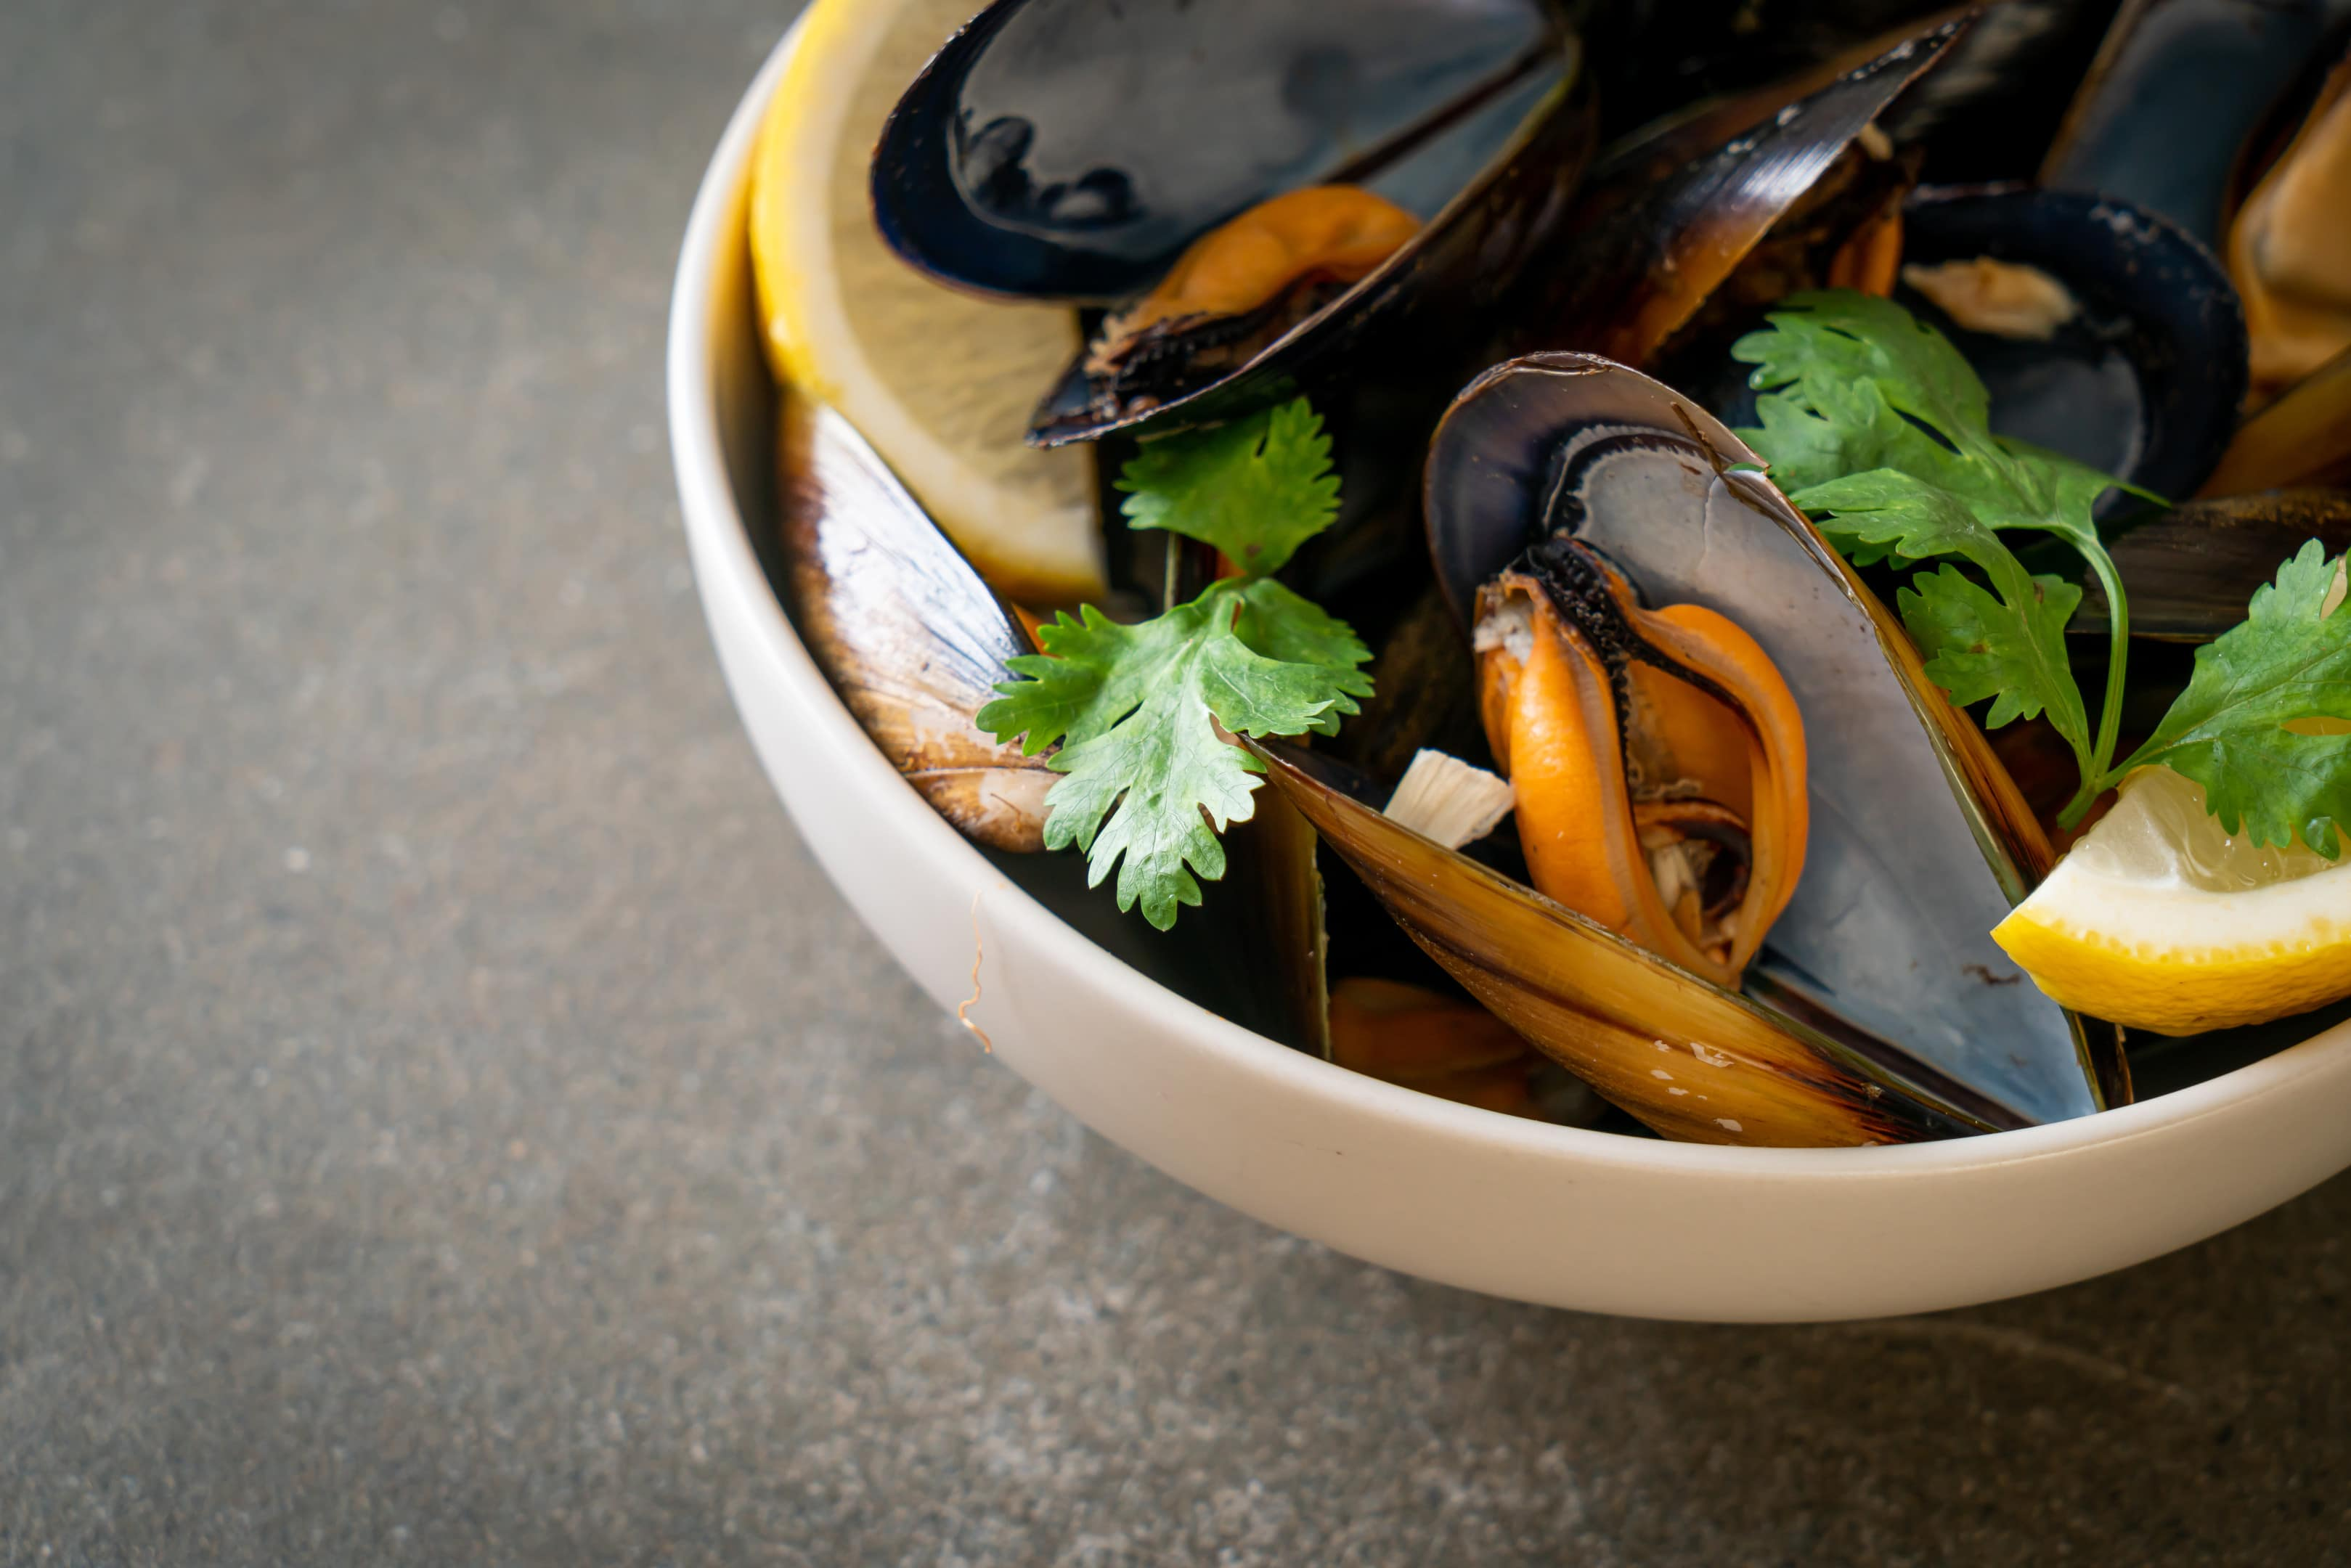 Fresh mussels with herbs in bowl